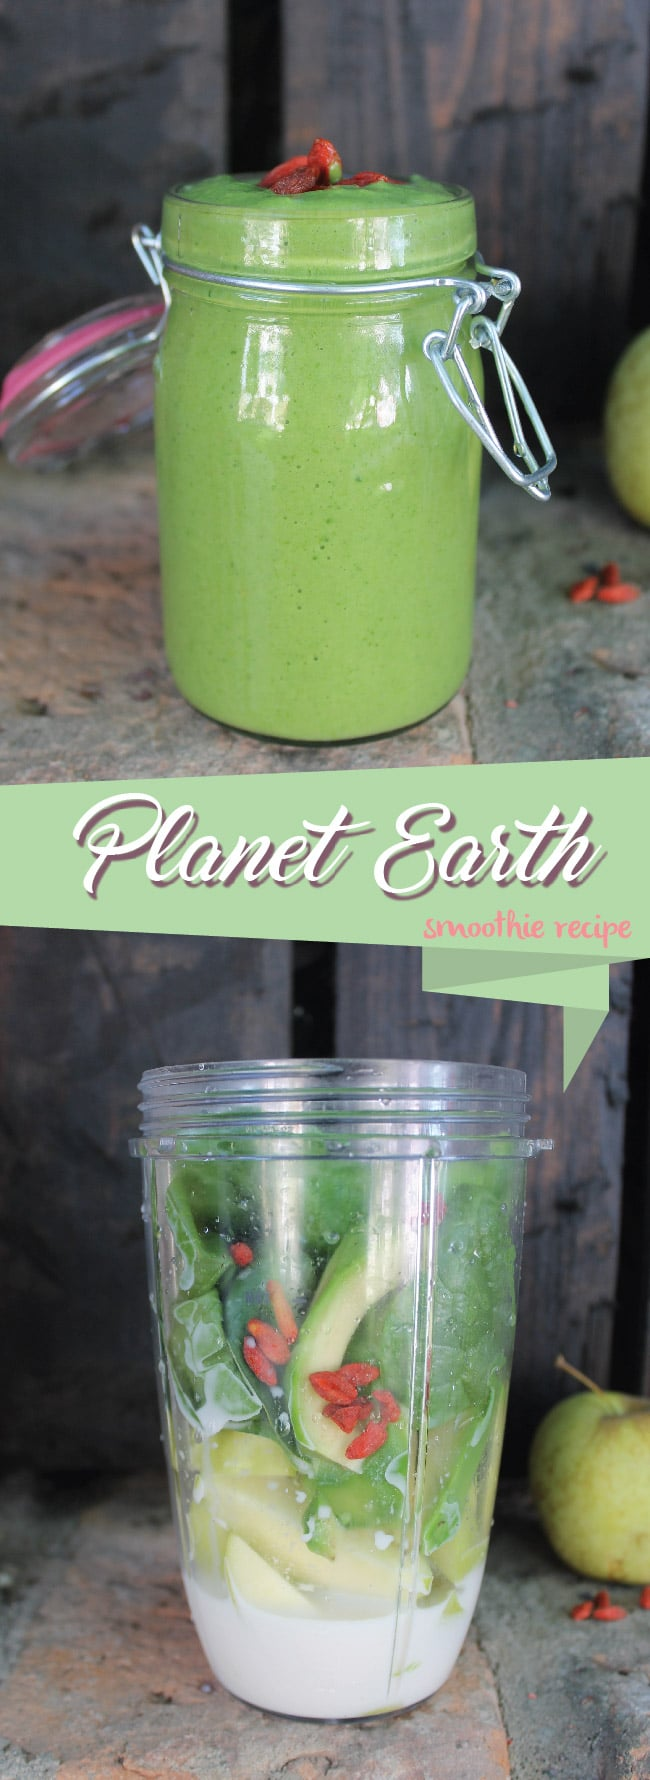 10 Cosmic Health Shakes - The Healthiest Low Carb Smoothie Recipes In The Universe - PLANET EARTH